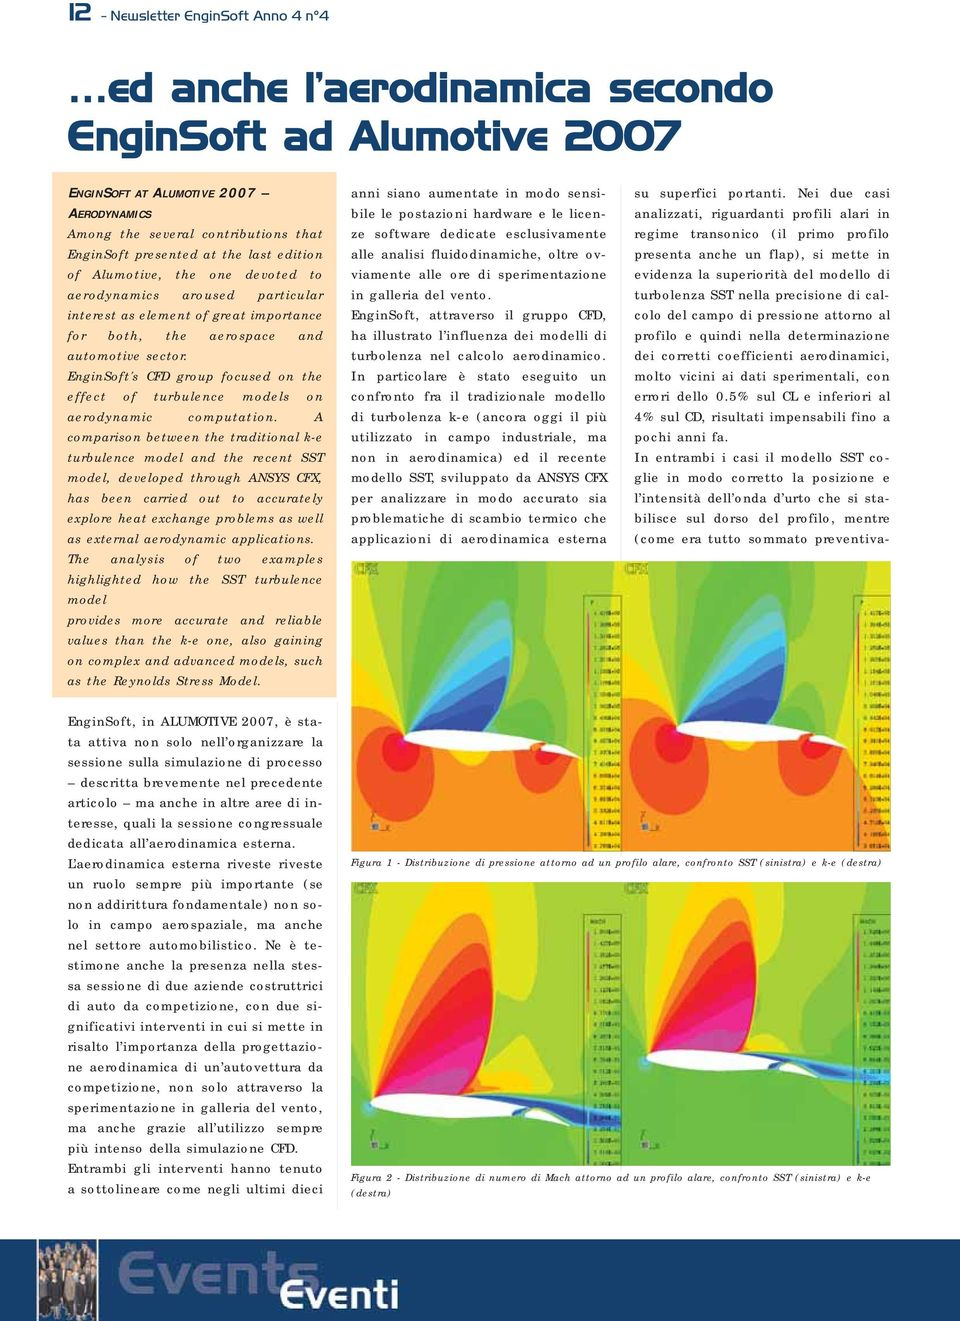 EnginSoft's CFD group focused on the effect of turbulence models on aerodynamic computation.